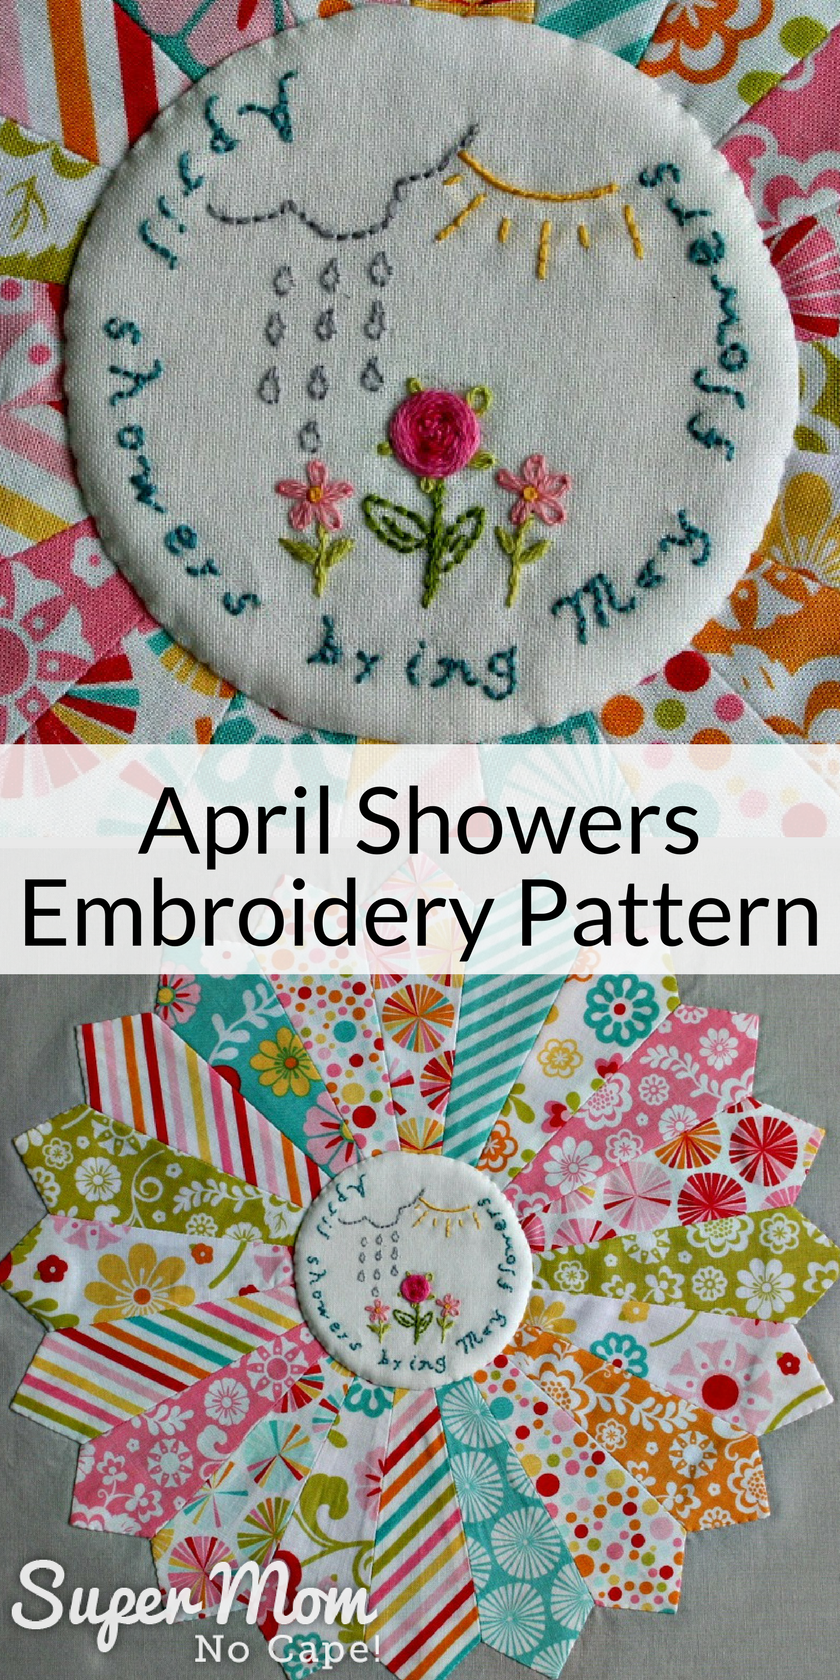 April Showers Embroidery pattern stitched on to the center of a Dresden plate block